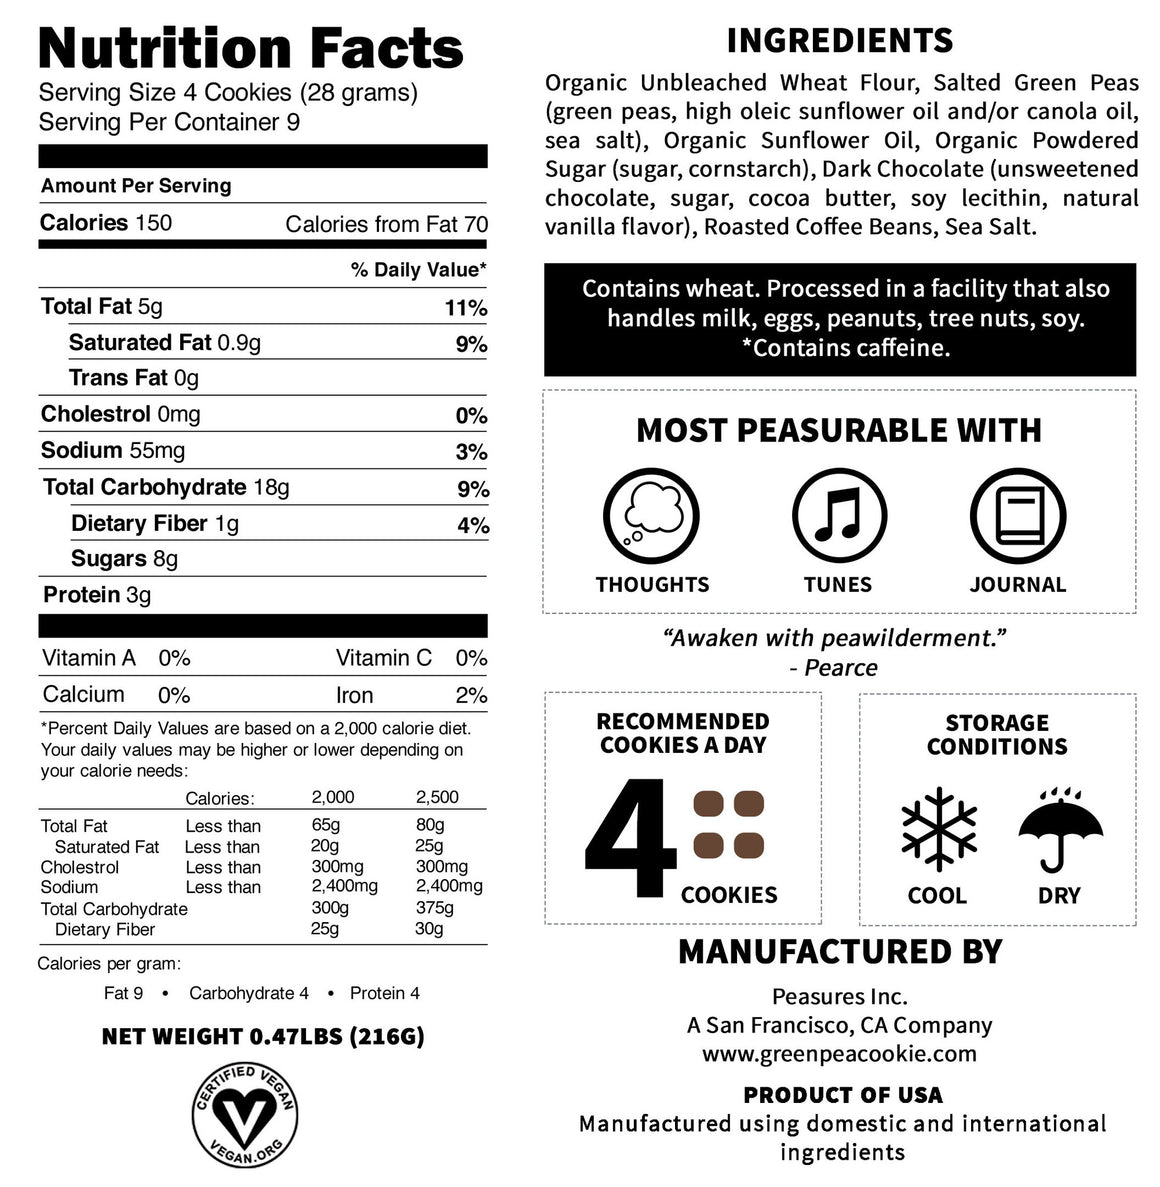 Nutrition Facts Of The Mocha Green Pea Cookie